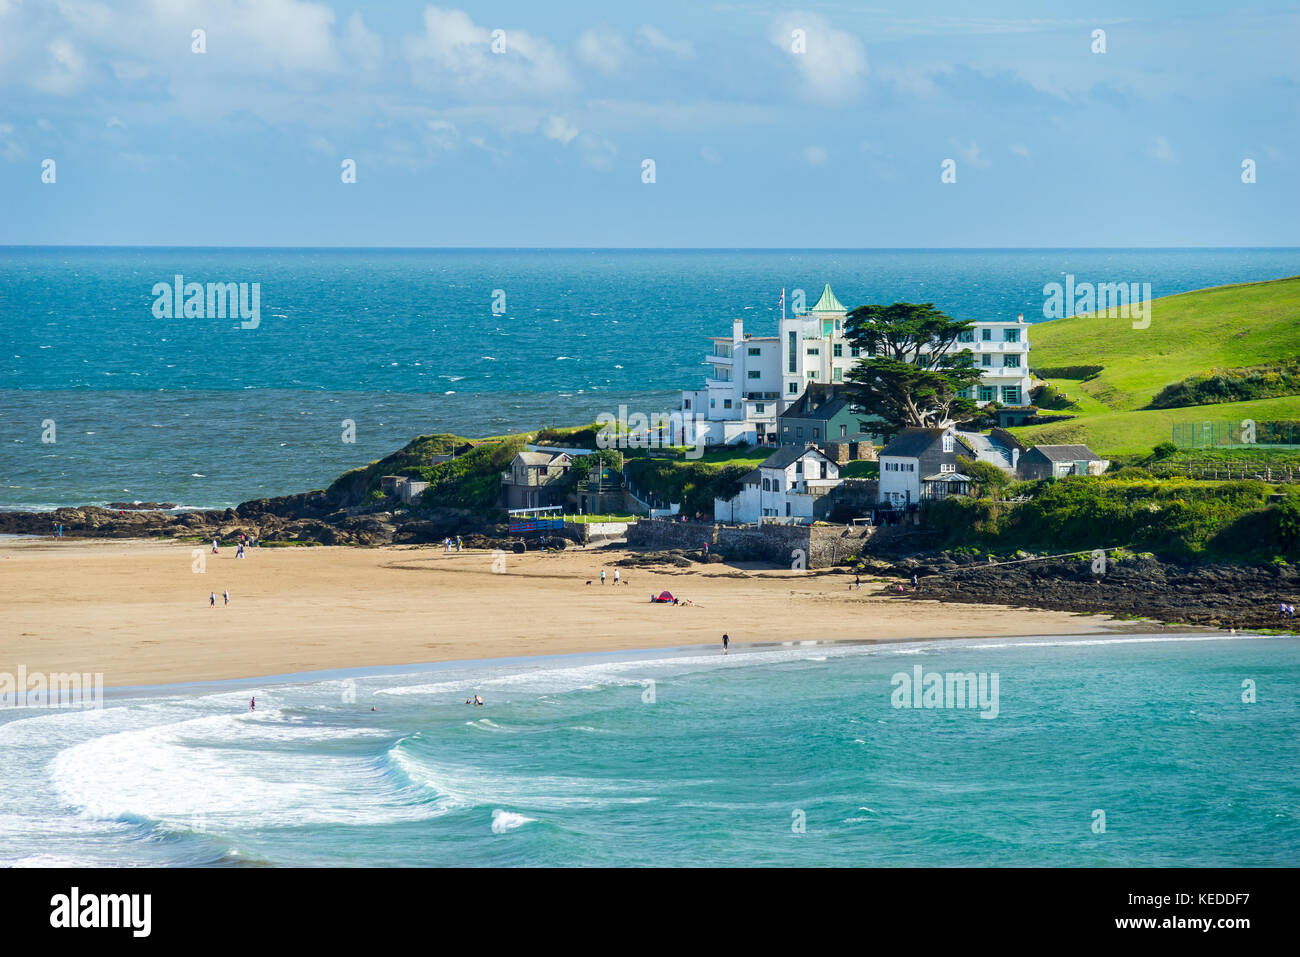 Overlooking Burgh Island South Hams Devon England UK Europe - Stock Image